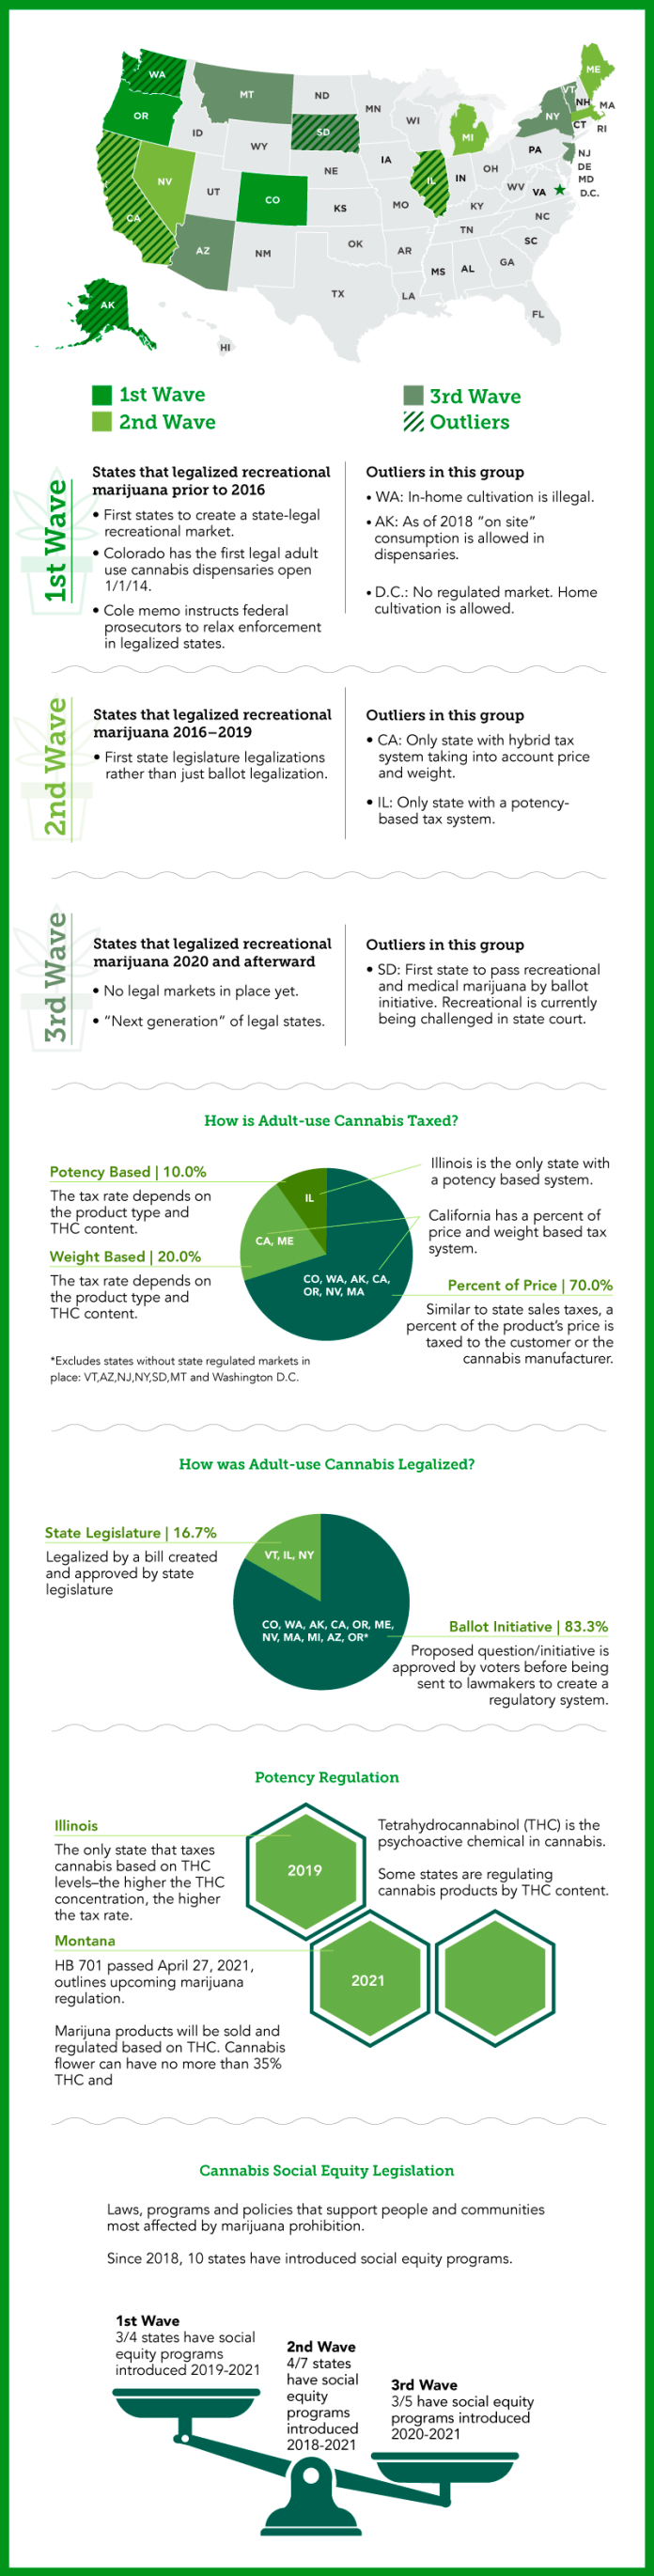 An infographic detailing marijuana laws around the country and providing information on how states went about legalizing cannabis, how it is taxed, how it is regulated and whether there is social equity legislation.